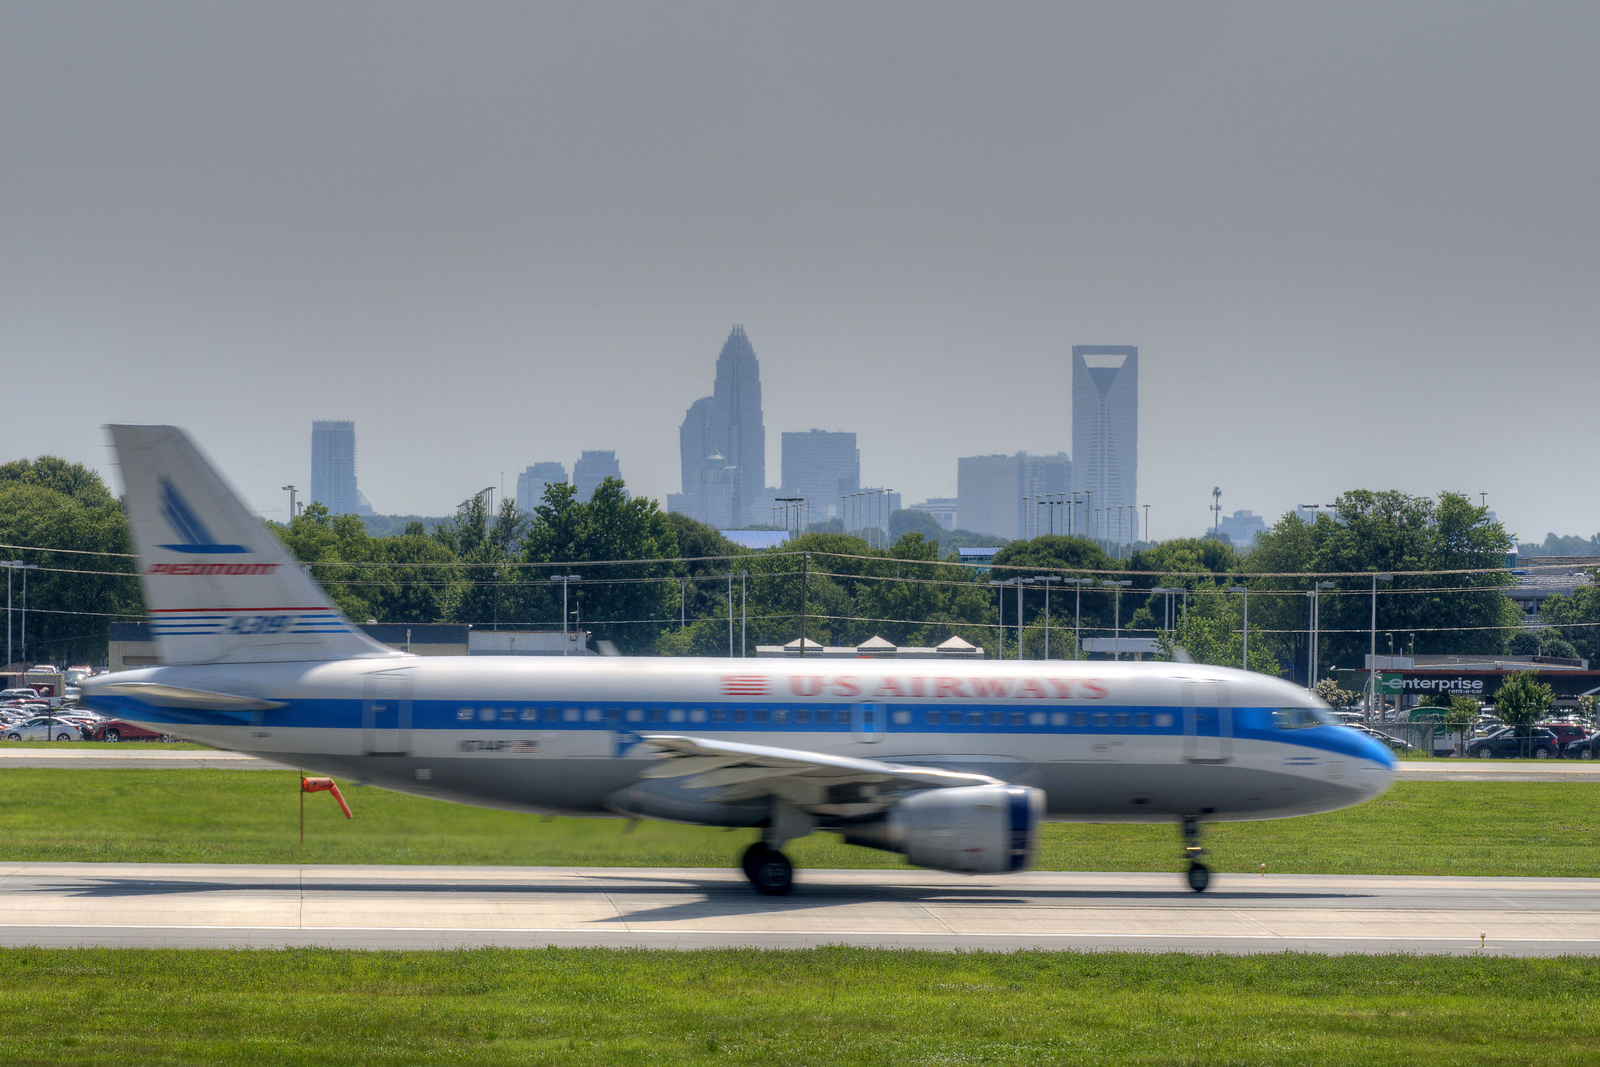 An US Airways Airbus A320 takes off with a view of Uptown Charlotte in the distance at the Airport Observation Park at Charlotte-Douglas International Airport in Charlotte, NC on Sunday, June 15, 2014. Copyright 2014 Jason Barnette